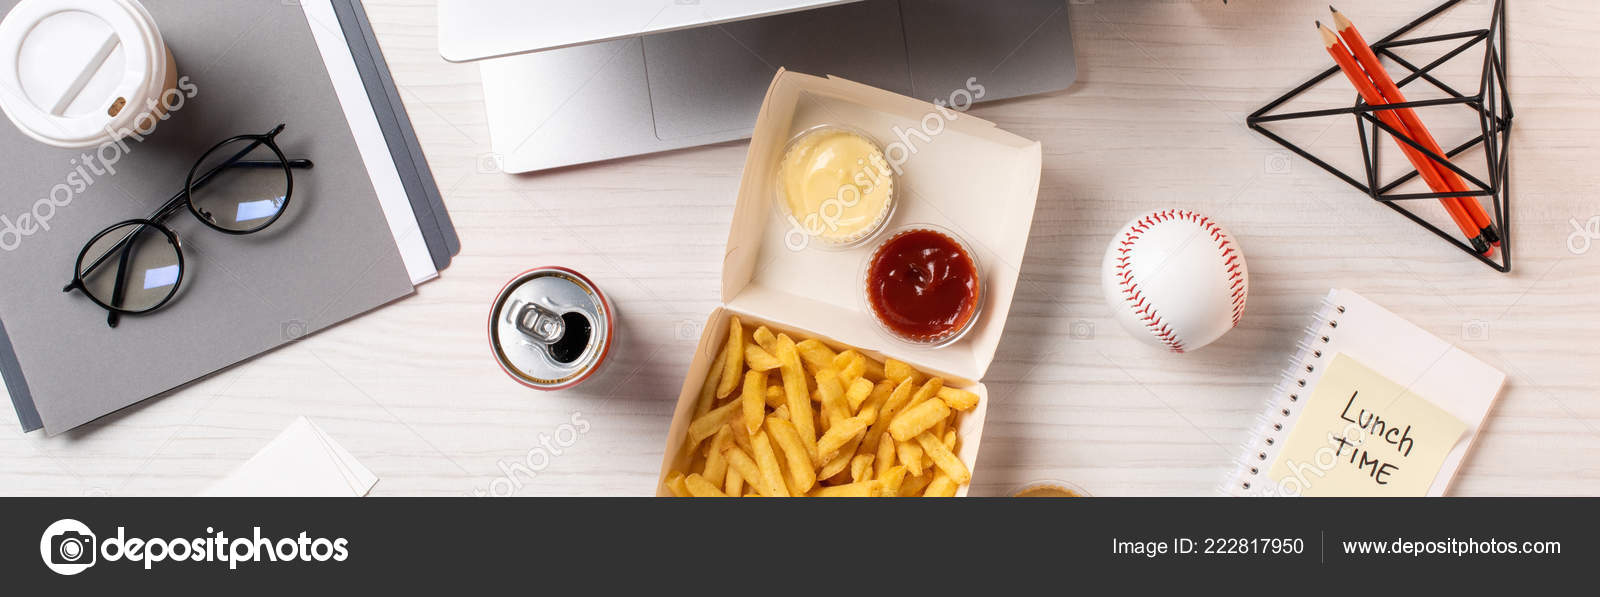 Attirant Top View French Fries Soda Can Baseball Ball Office Supplies U2014 Stock Photo